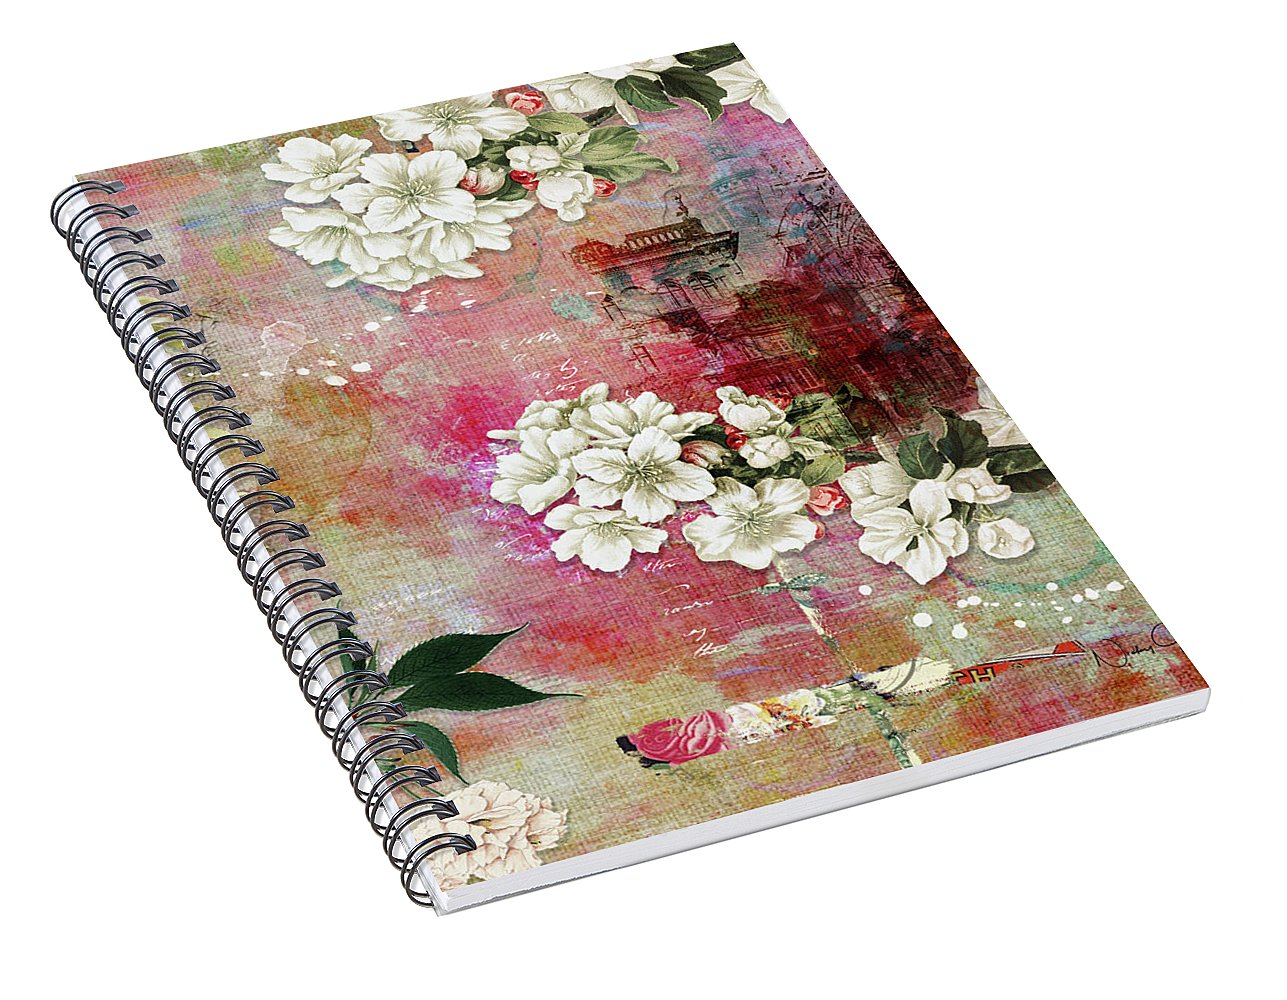 I know The Cherry Blossom Will  Still Bloom - Spiral Notebook and Journal